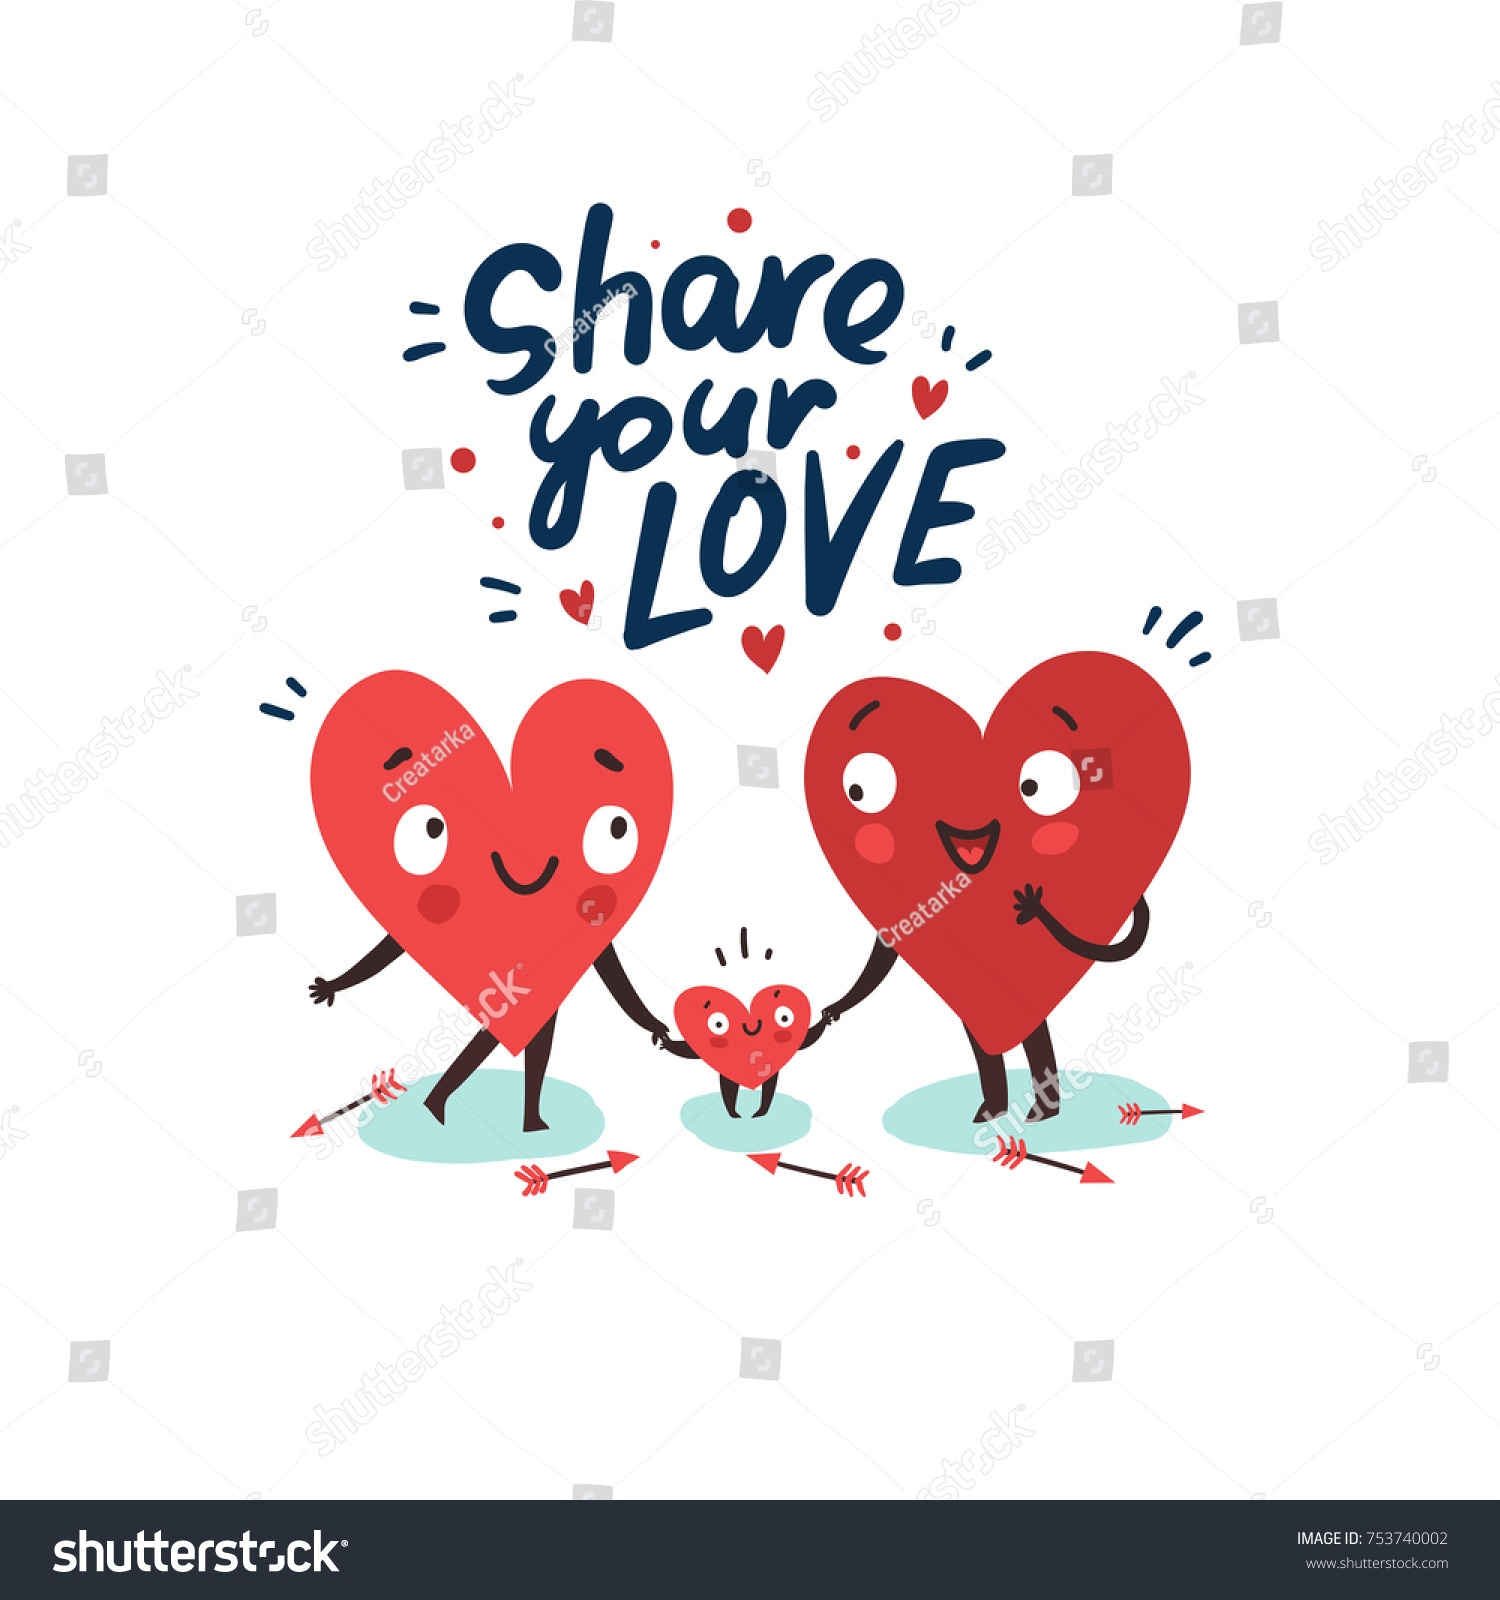 Cute family parents child hearts characters stock vector 753740002 cute family parents with child hearts characters as symbols of love and family buycottarizona Images